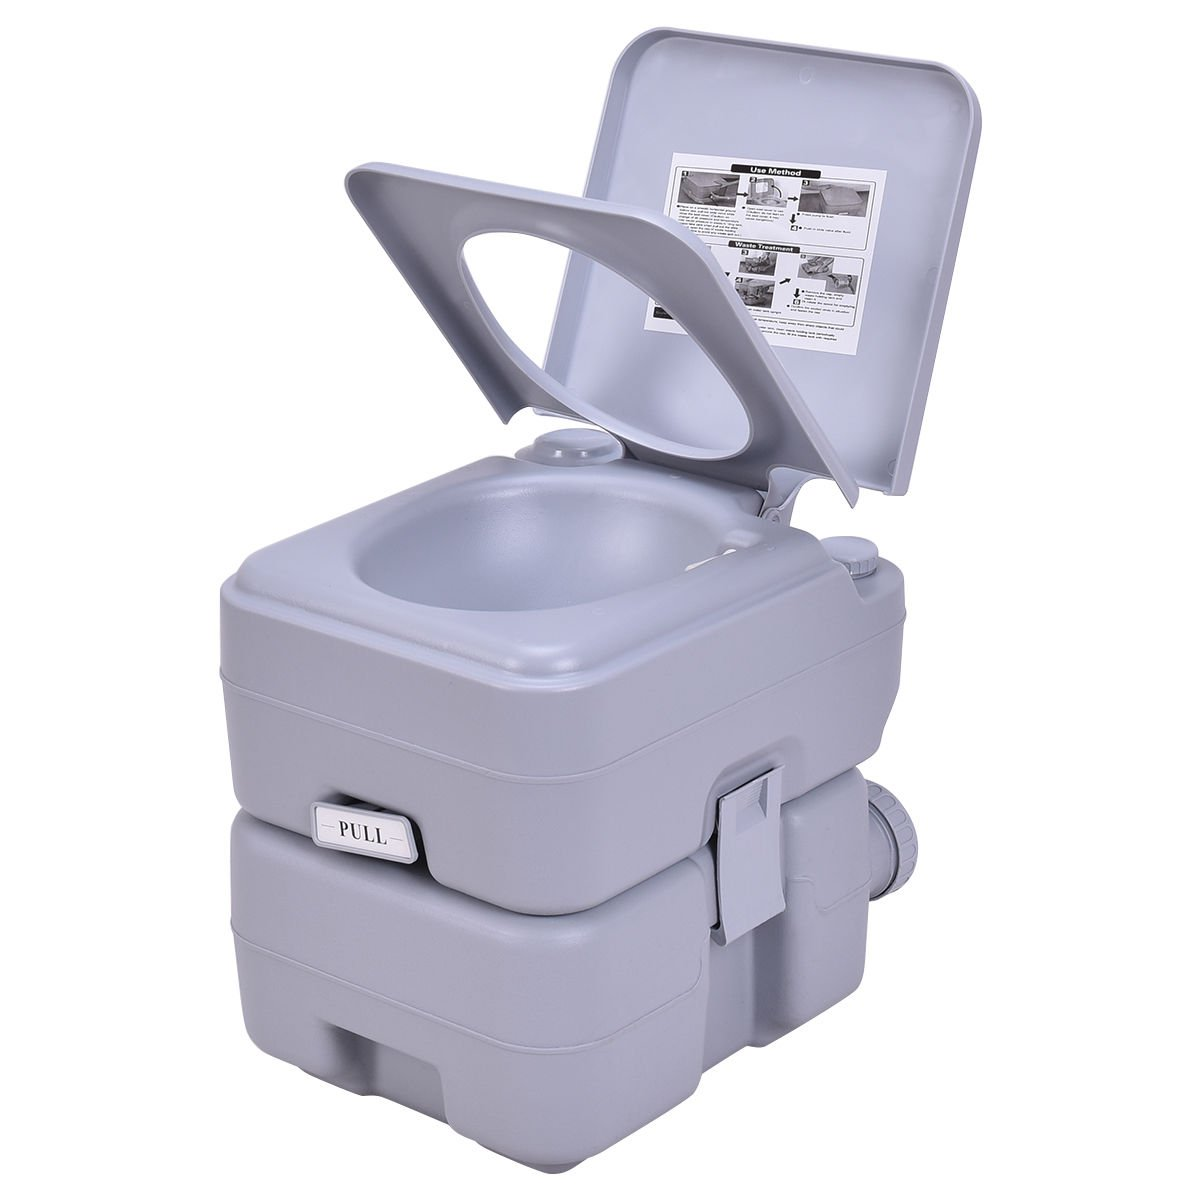 COLIBROX--5 Gallon 20L Portable Toilet Flush Travel Camping Outdoor/Indoor Potty Commode,walters portable toilets,cheap toilets,luxury portable toilet,rei portable toilets,portable toilets for home us by COLIBROX (Image #4)